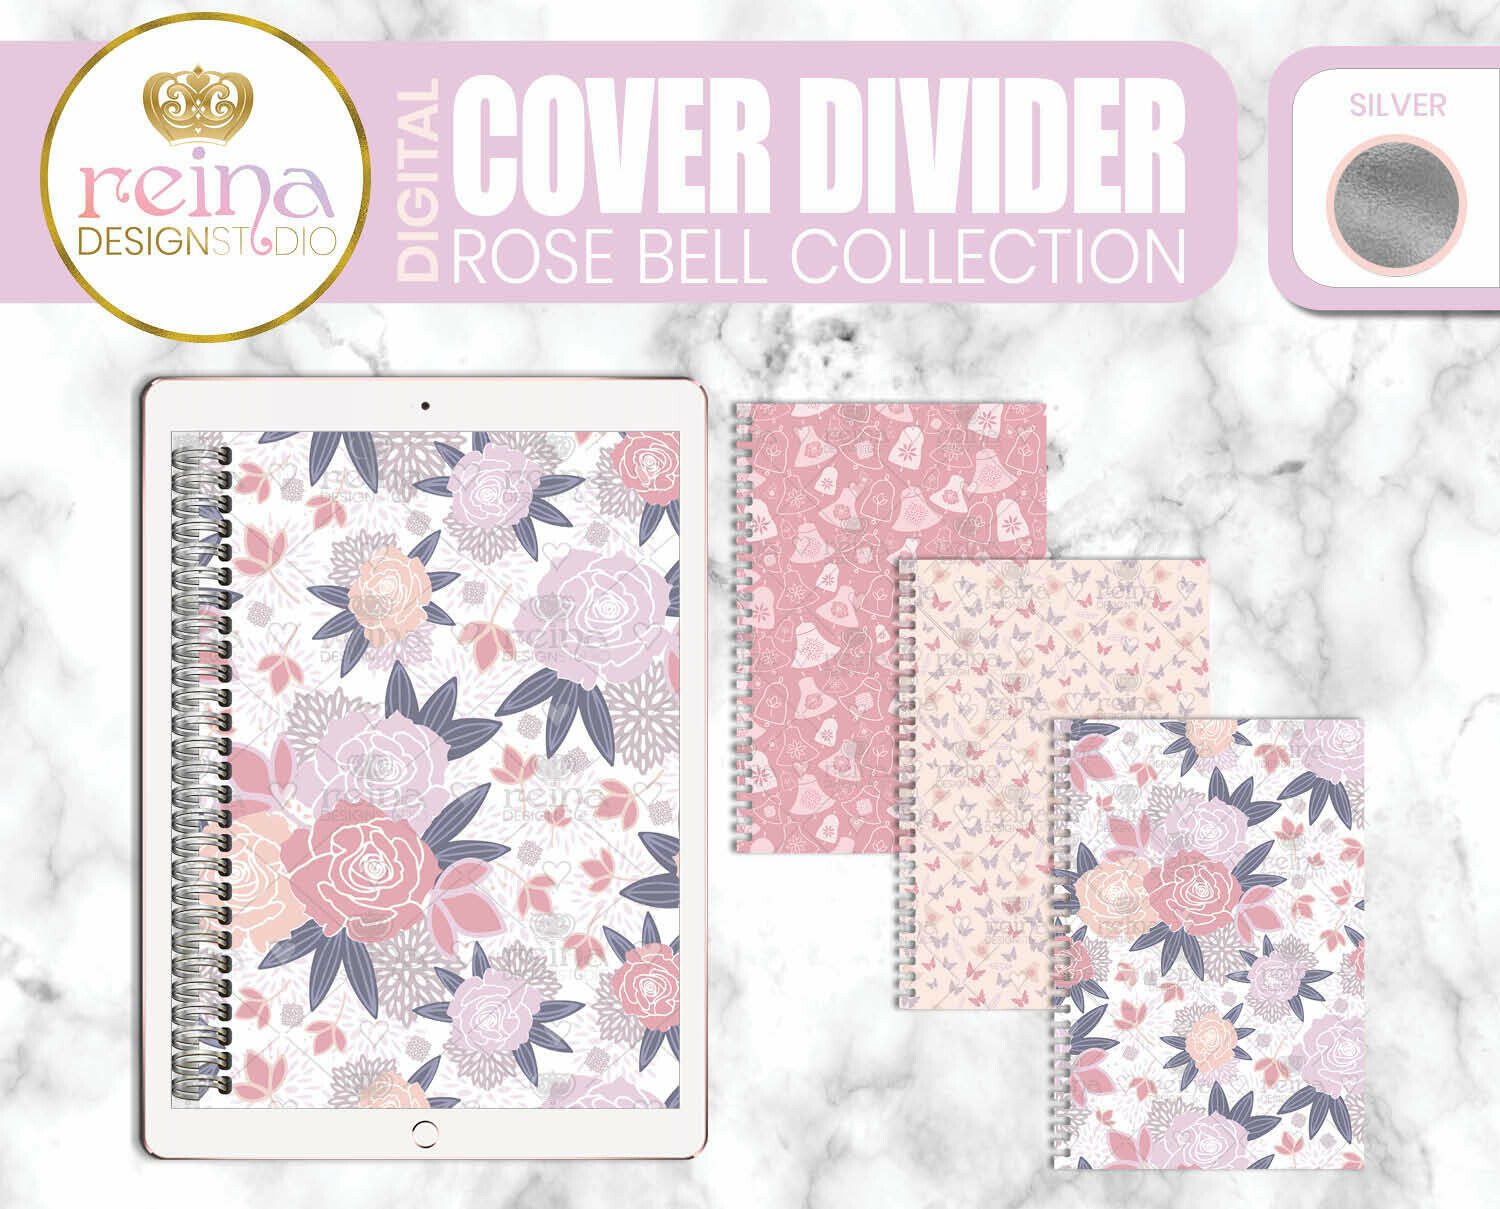 Interchangeable Digital Planner Cover and Dividers | Rose Bell, Silver